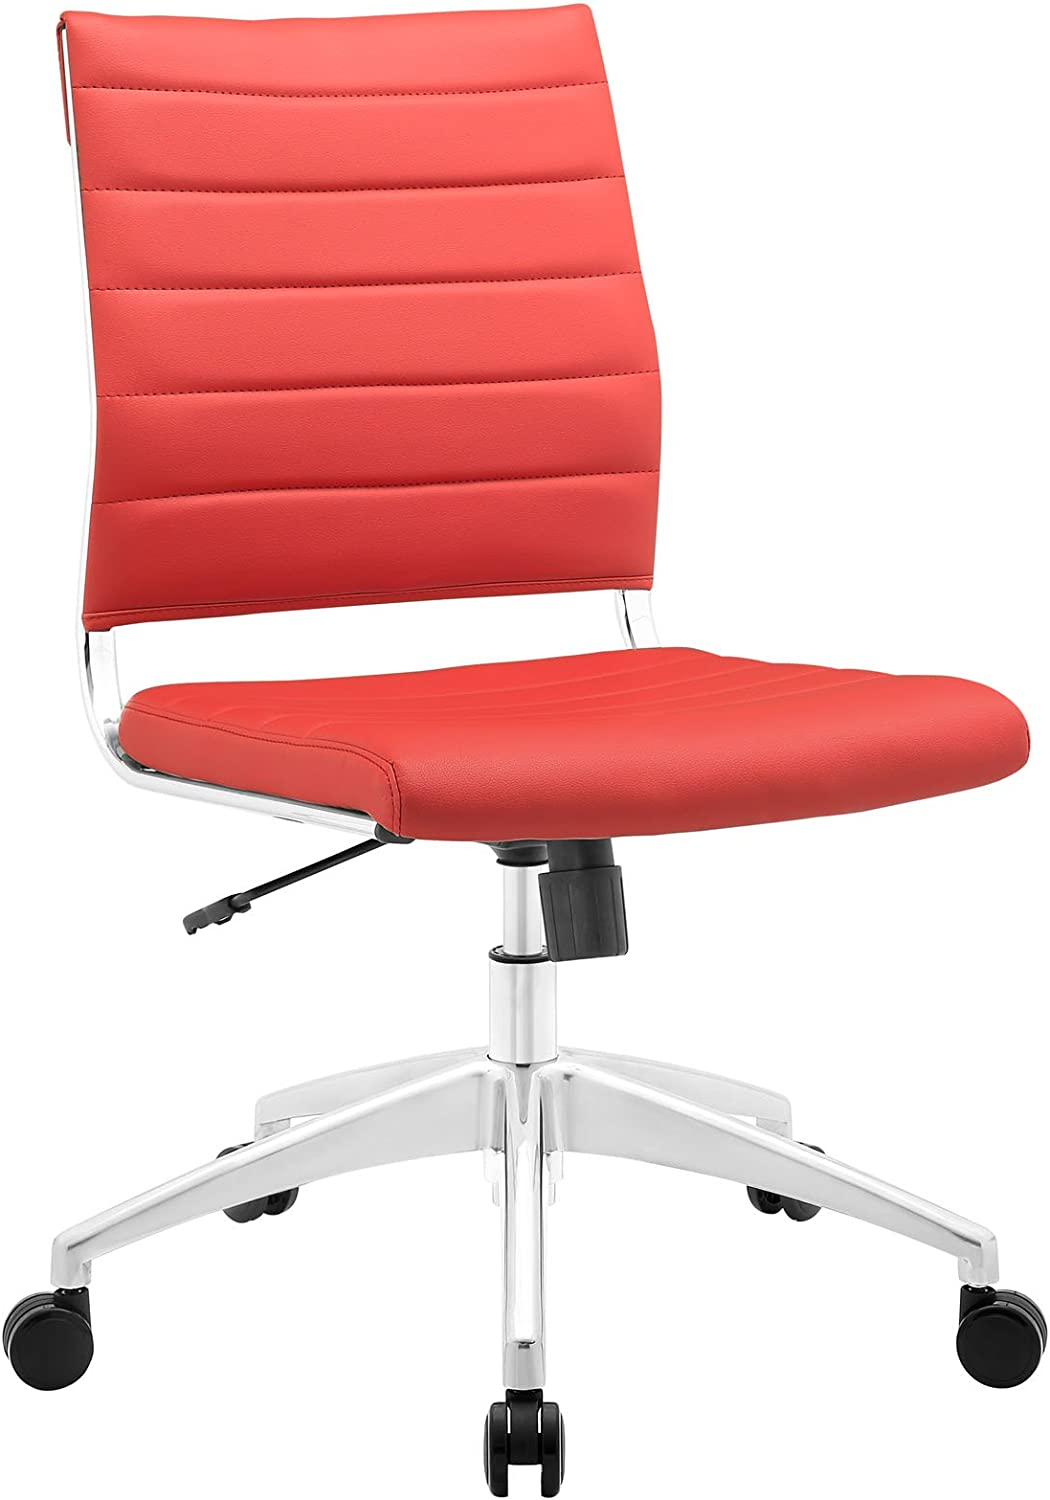 Modway Jive Mid Back Office Chair, Red